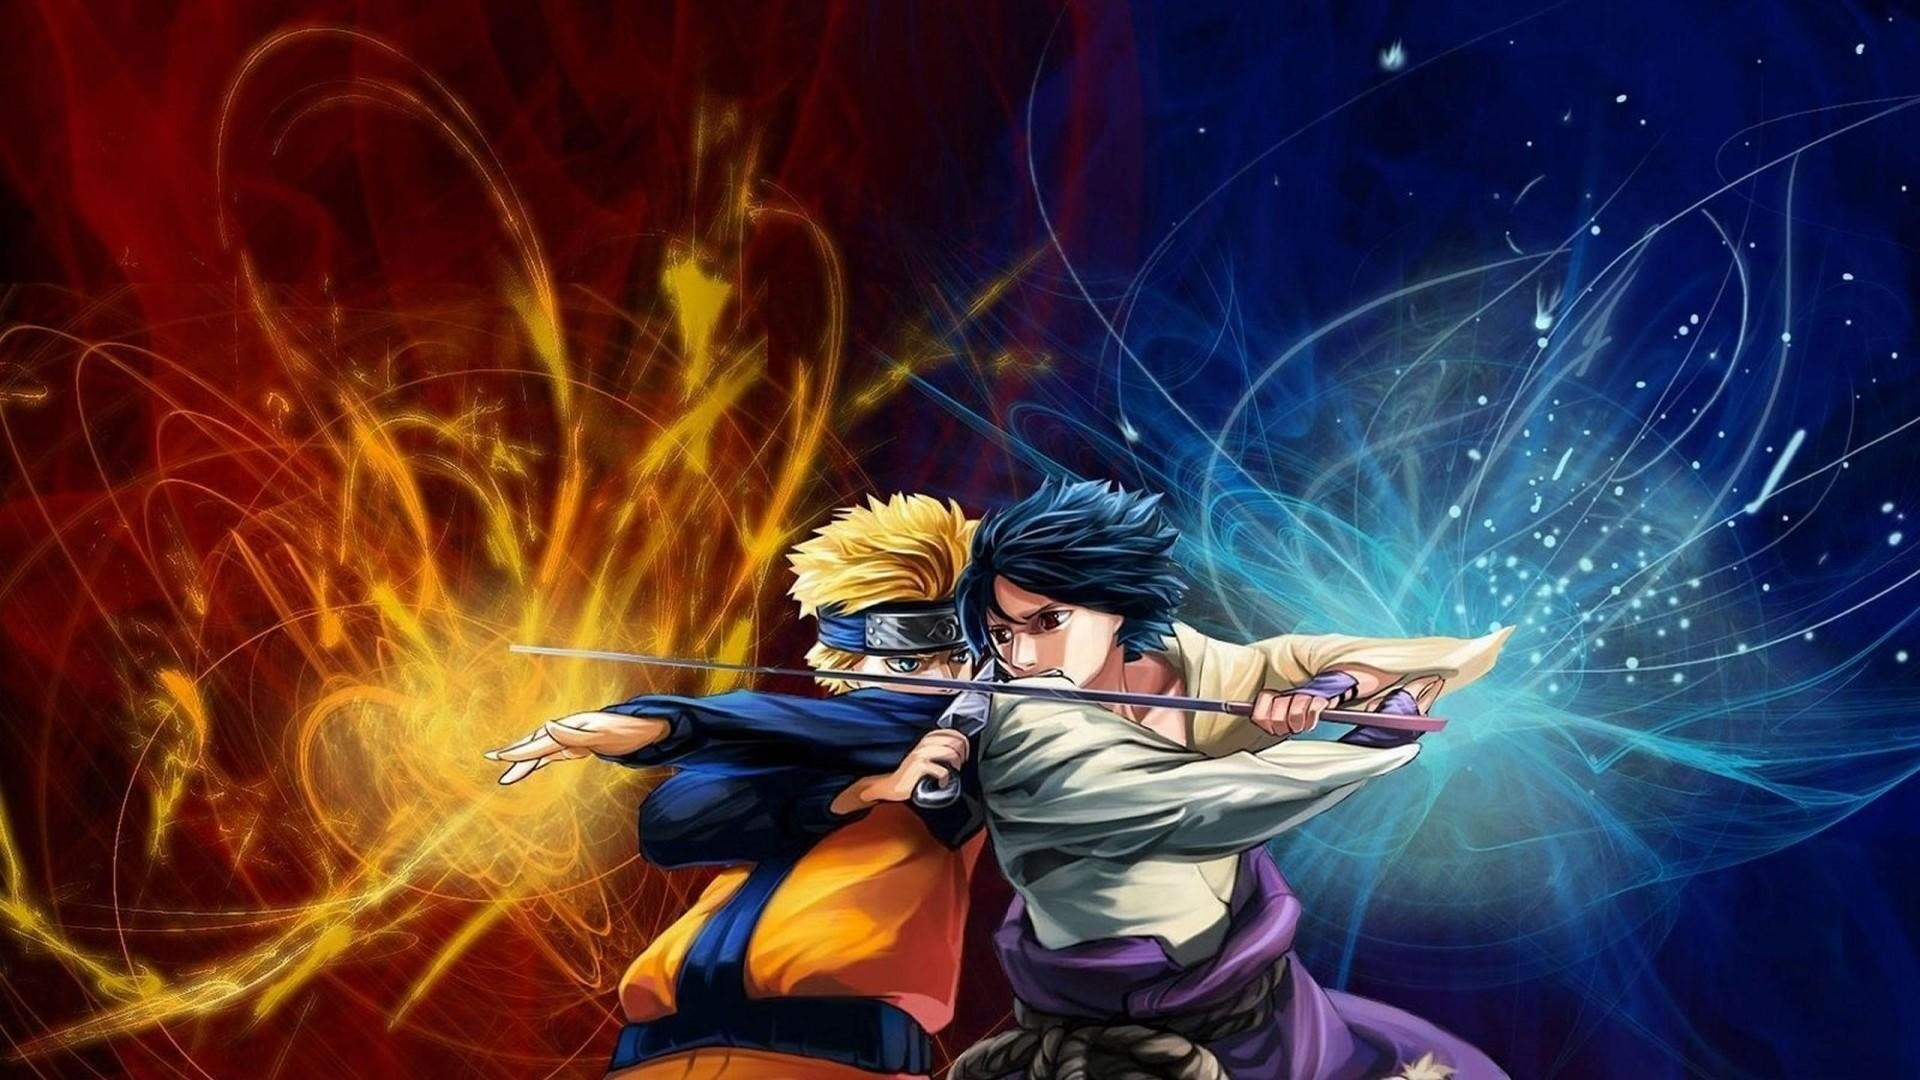 1920x1080 Naruto Vs Sasuke Naruto Anime Wallpaper #3275 | Hdwidescreens.